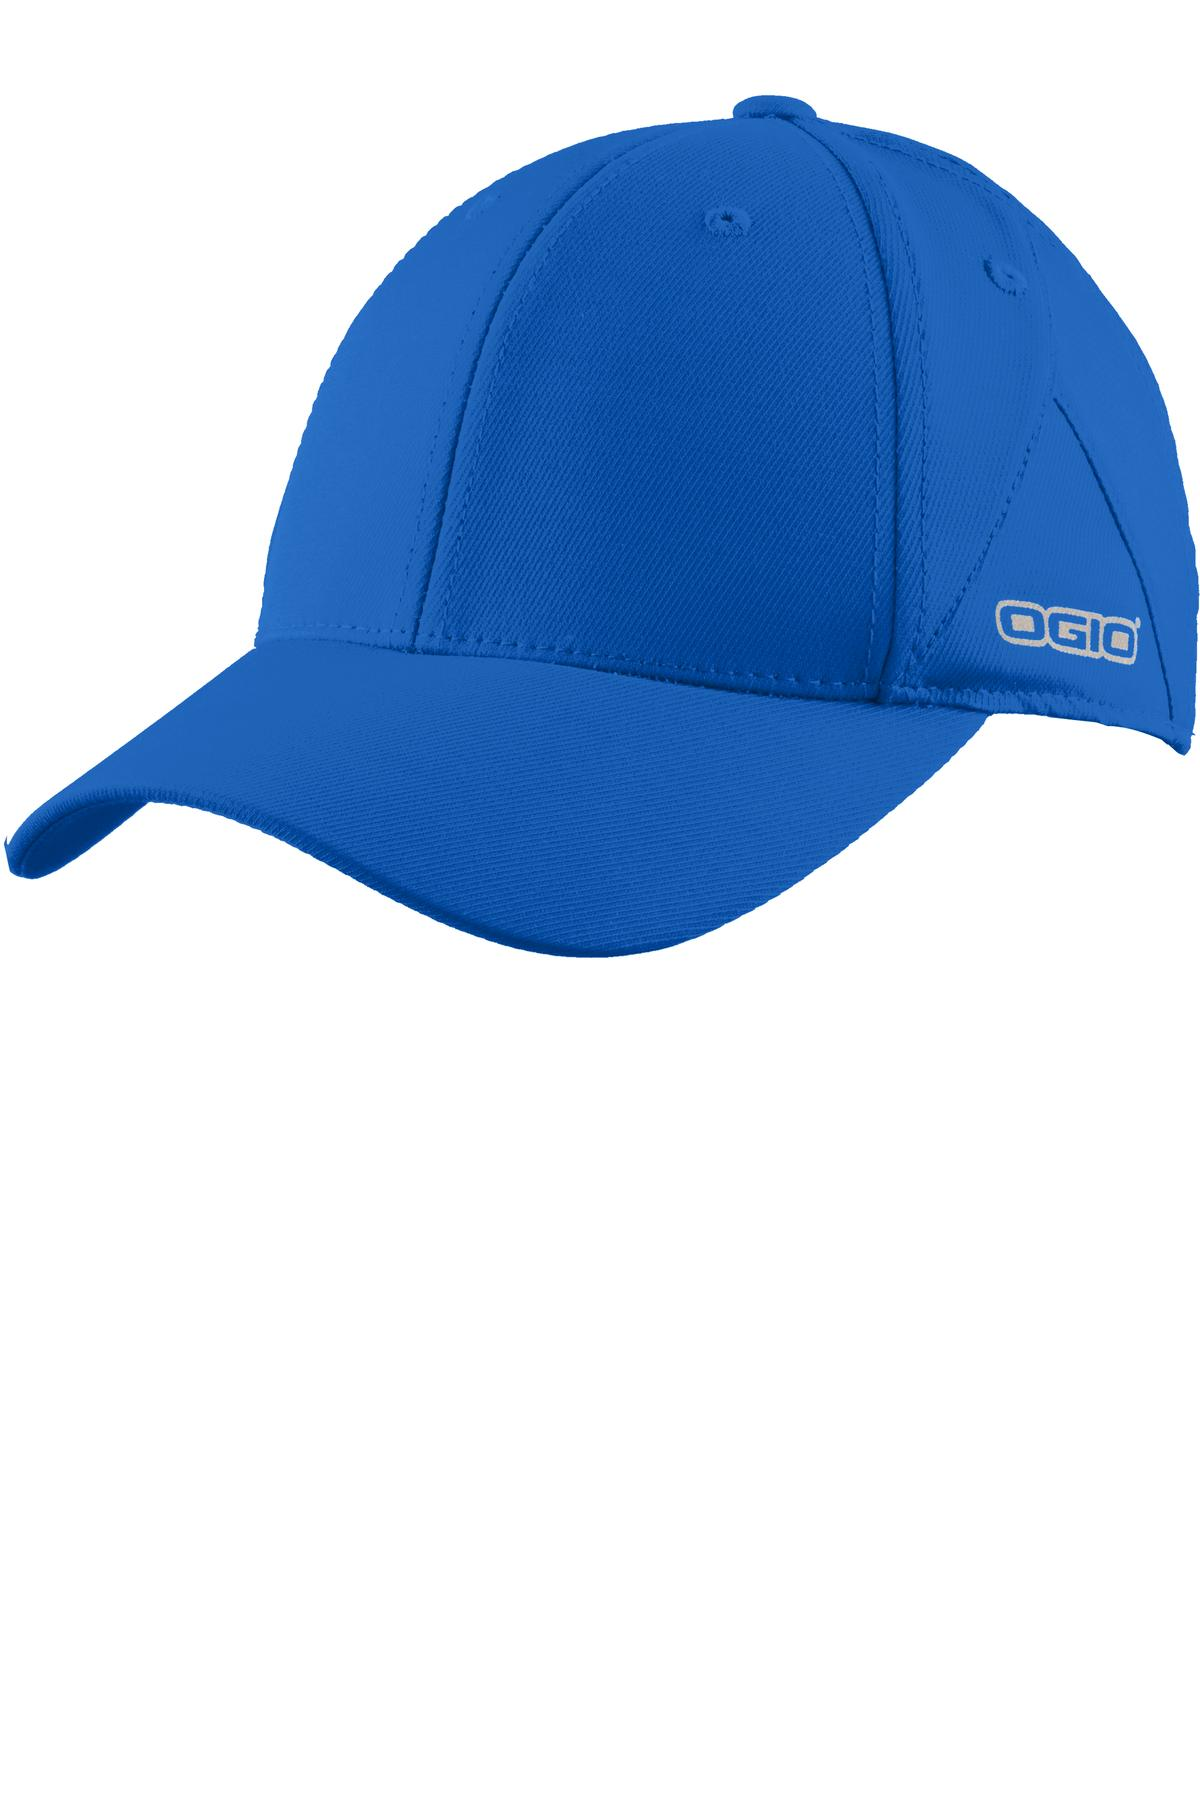 OGIO ®  ENDURANCE Apex Cap. OE650 - Electric Blue